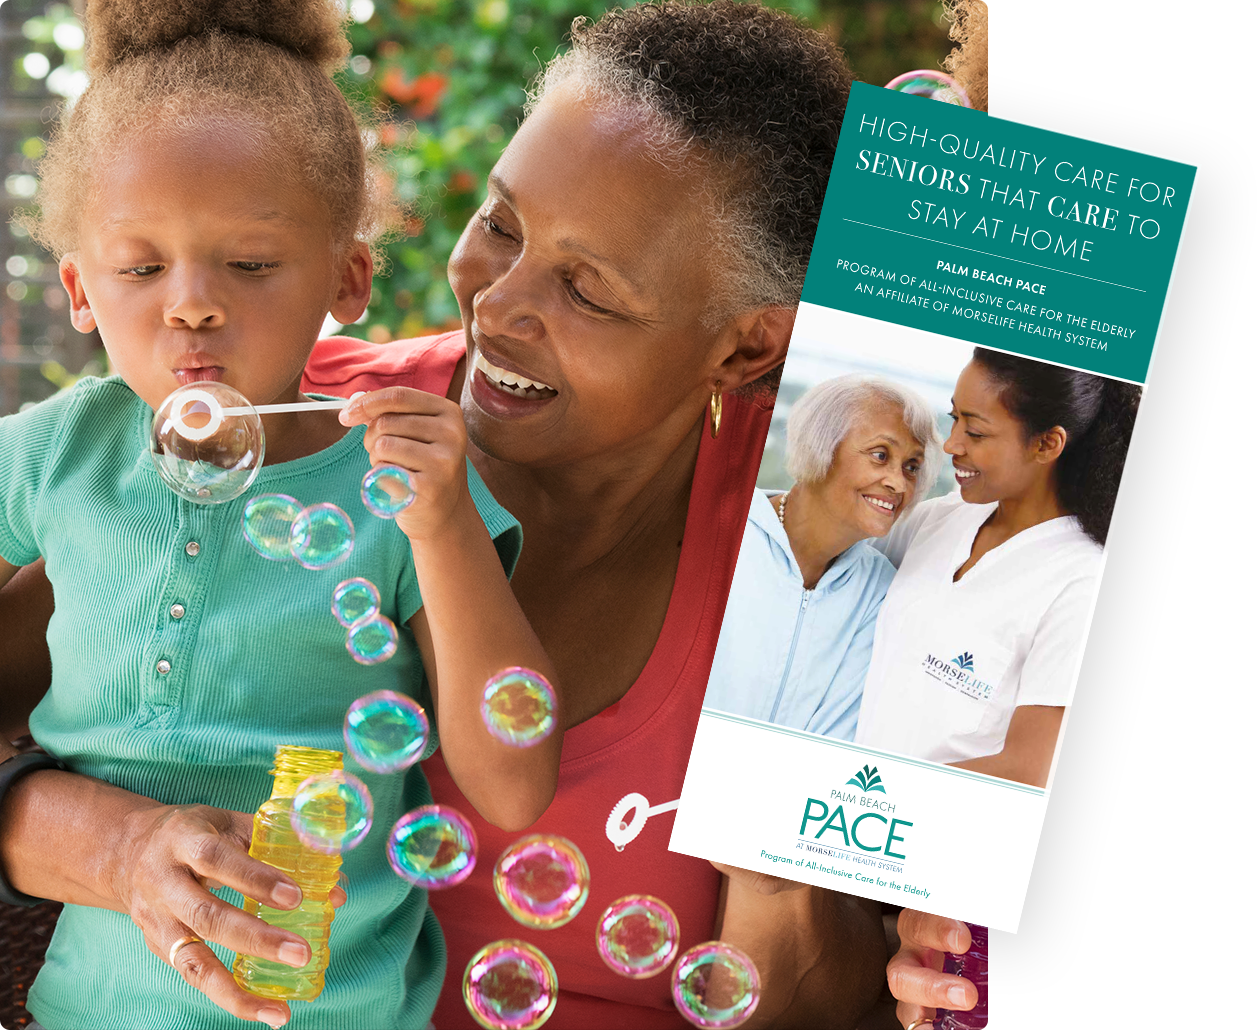 PACE brochure with elderly African-American woman with granddaughter, maximizing independence at home